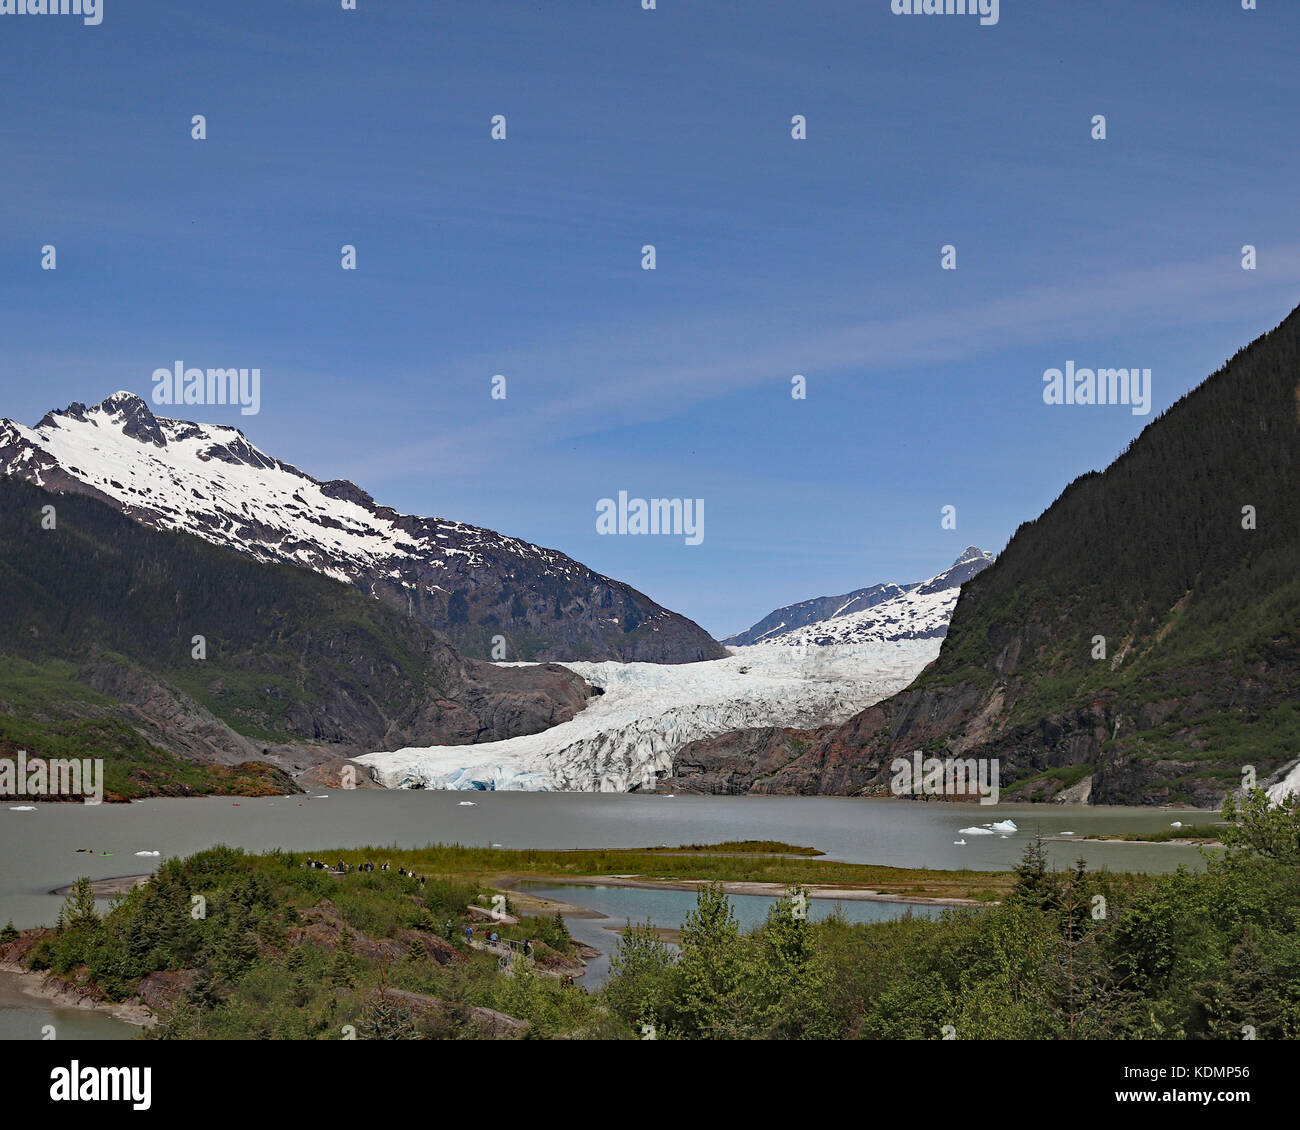 The Mendenhall glacier extends 13.6 miles from the Juneau Icefield down into Mendenhall valley and ends in a beautiful Stock Photo